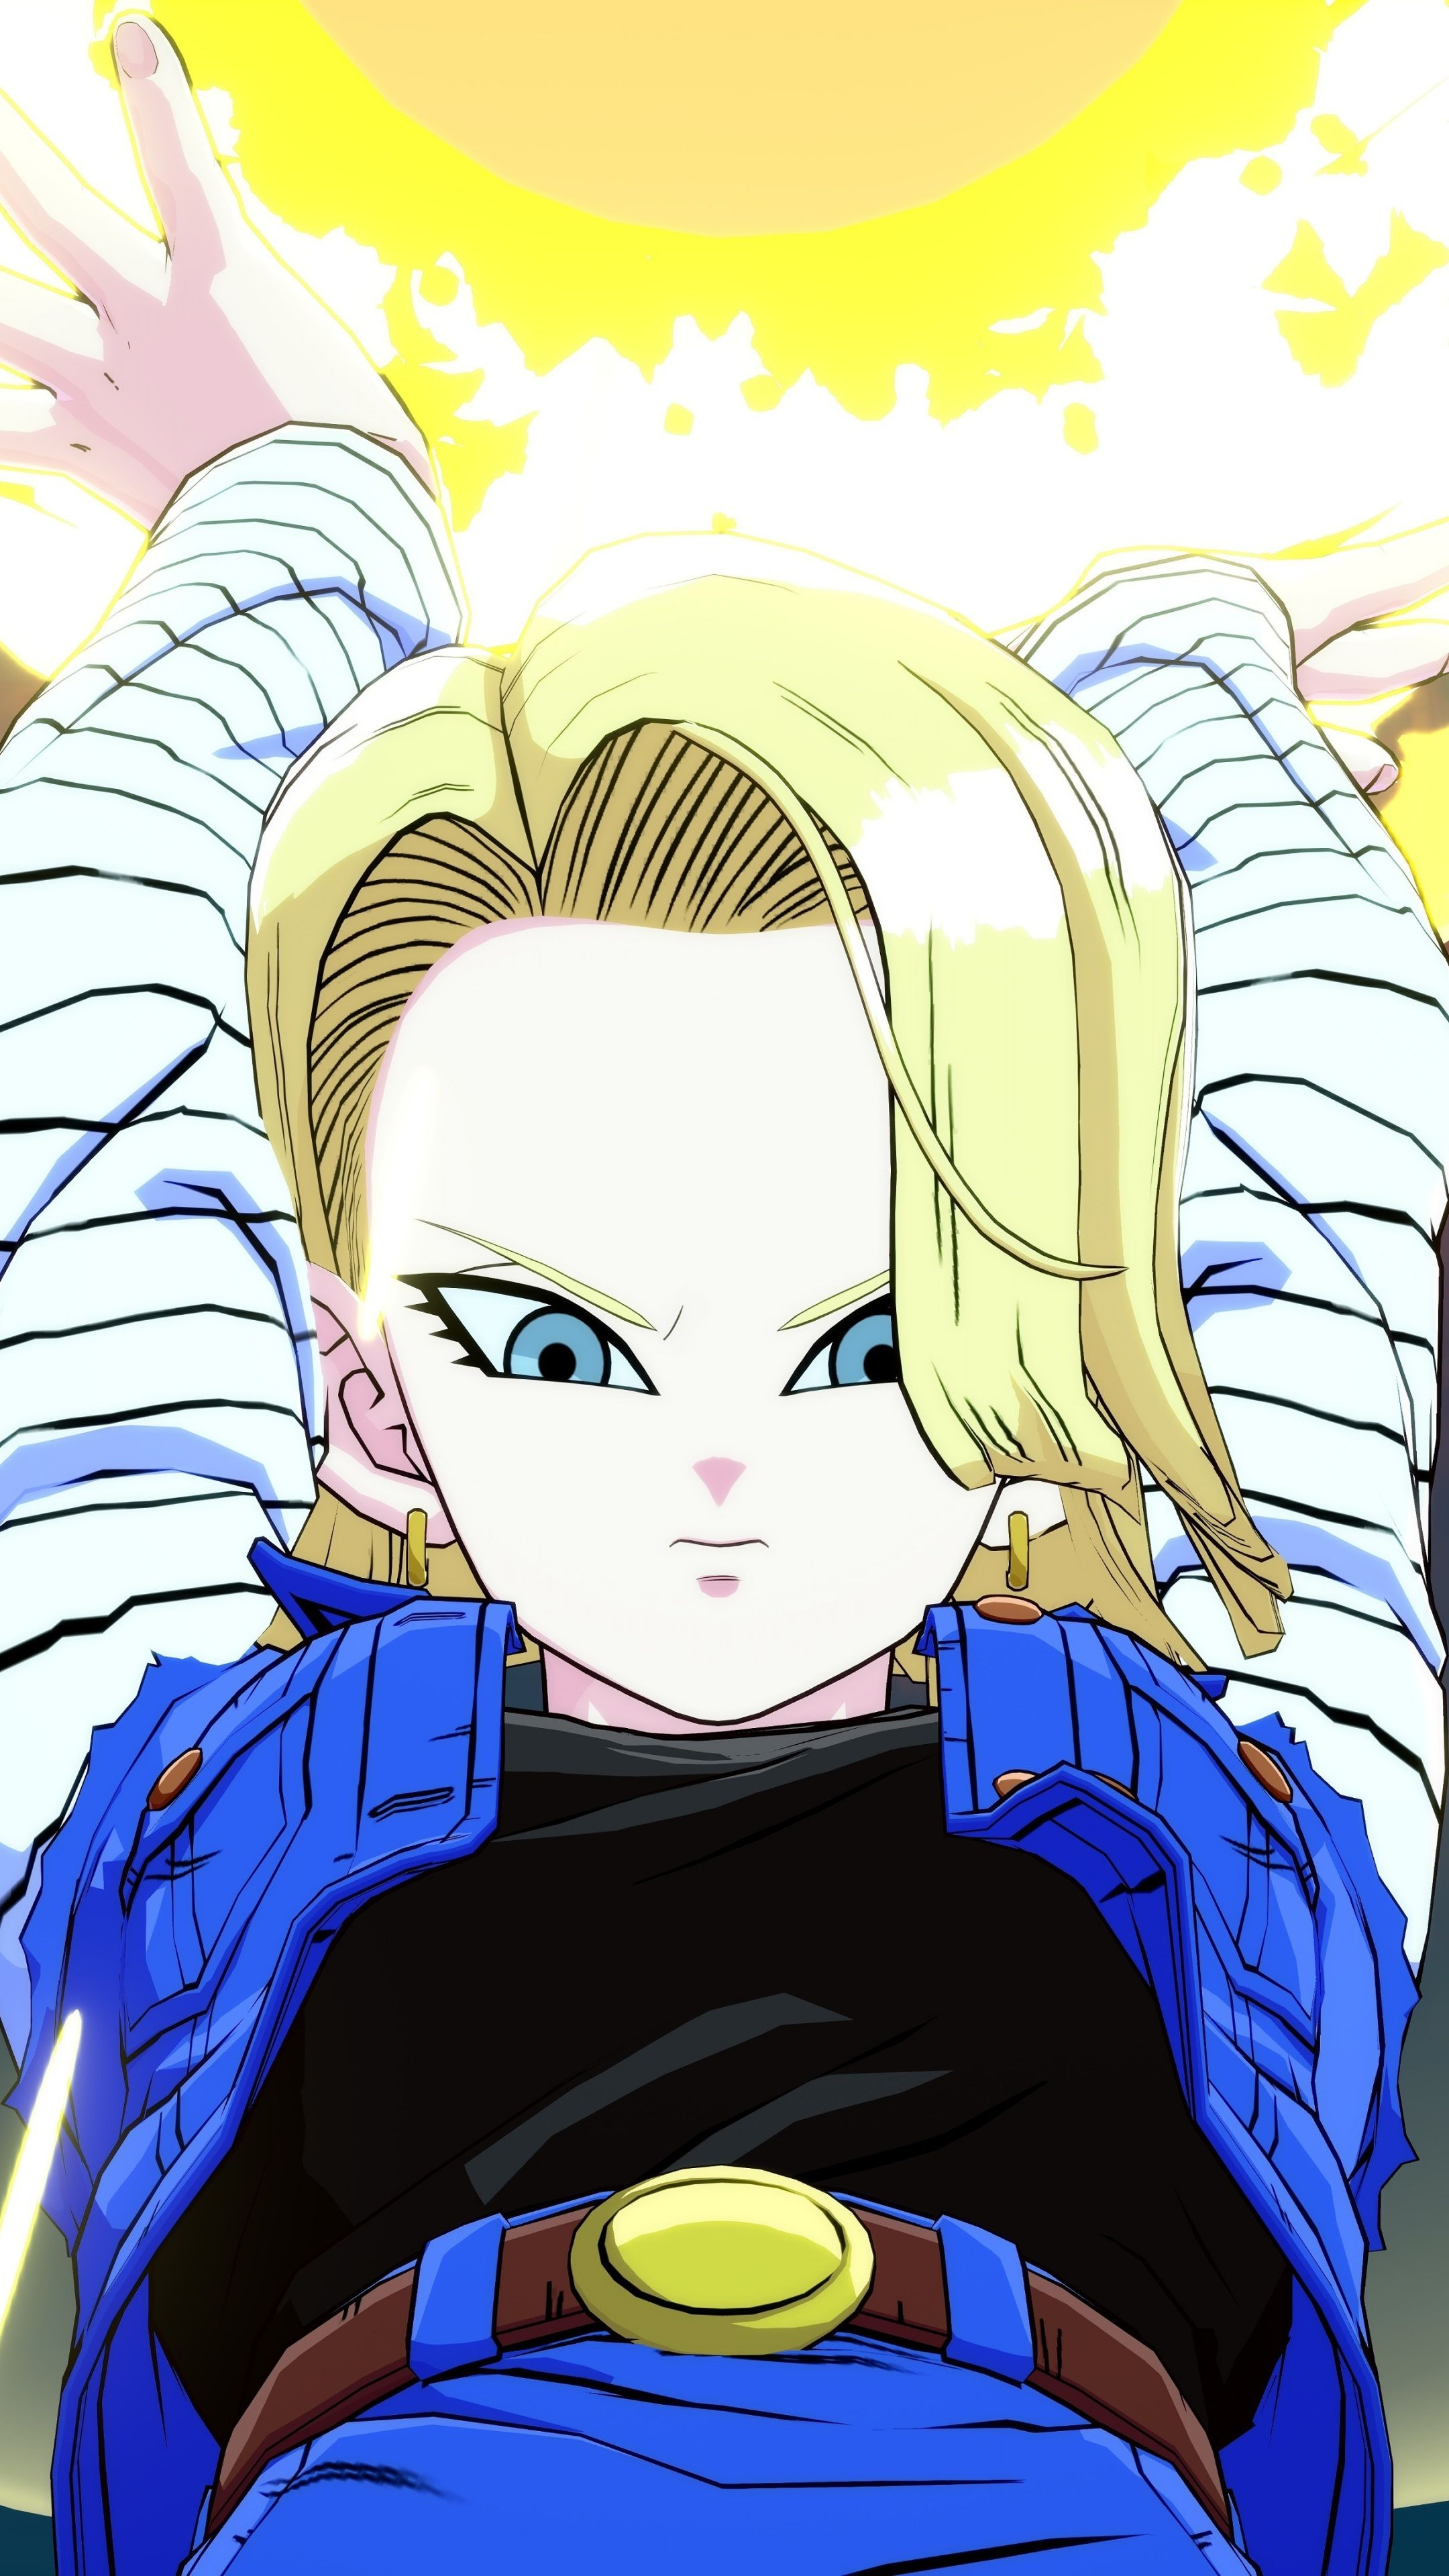 Super Android 18 Wallpapers - Wallpaper Cave